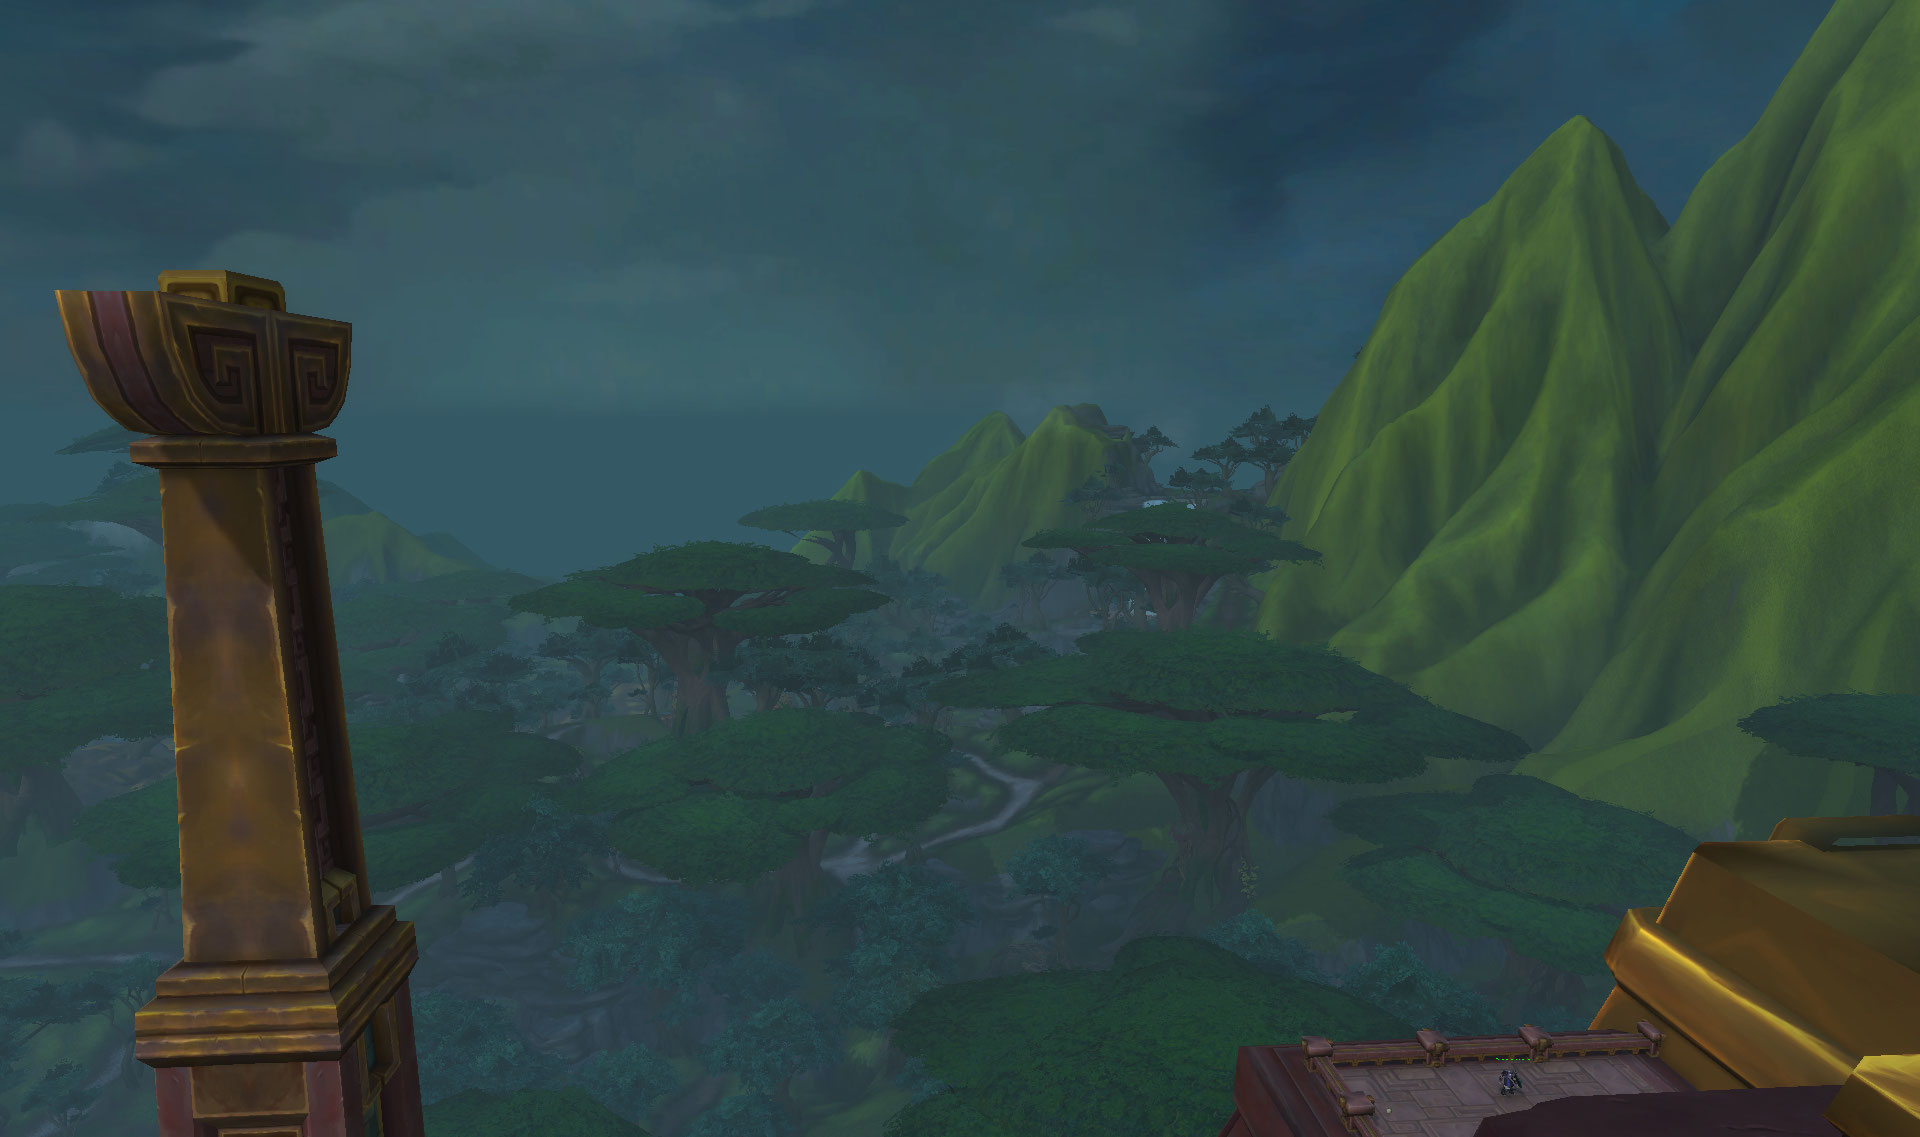 Screenshot de la région de Zuldazar dans World of Warcraft: Battle for Azeroth.